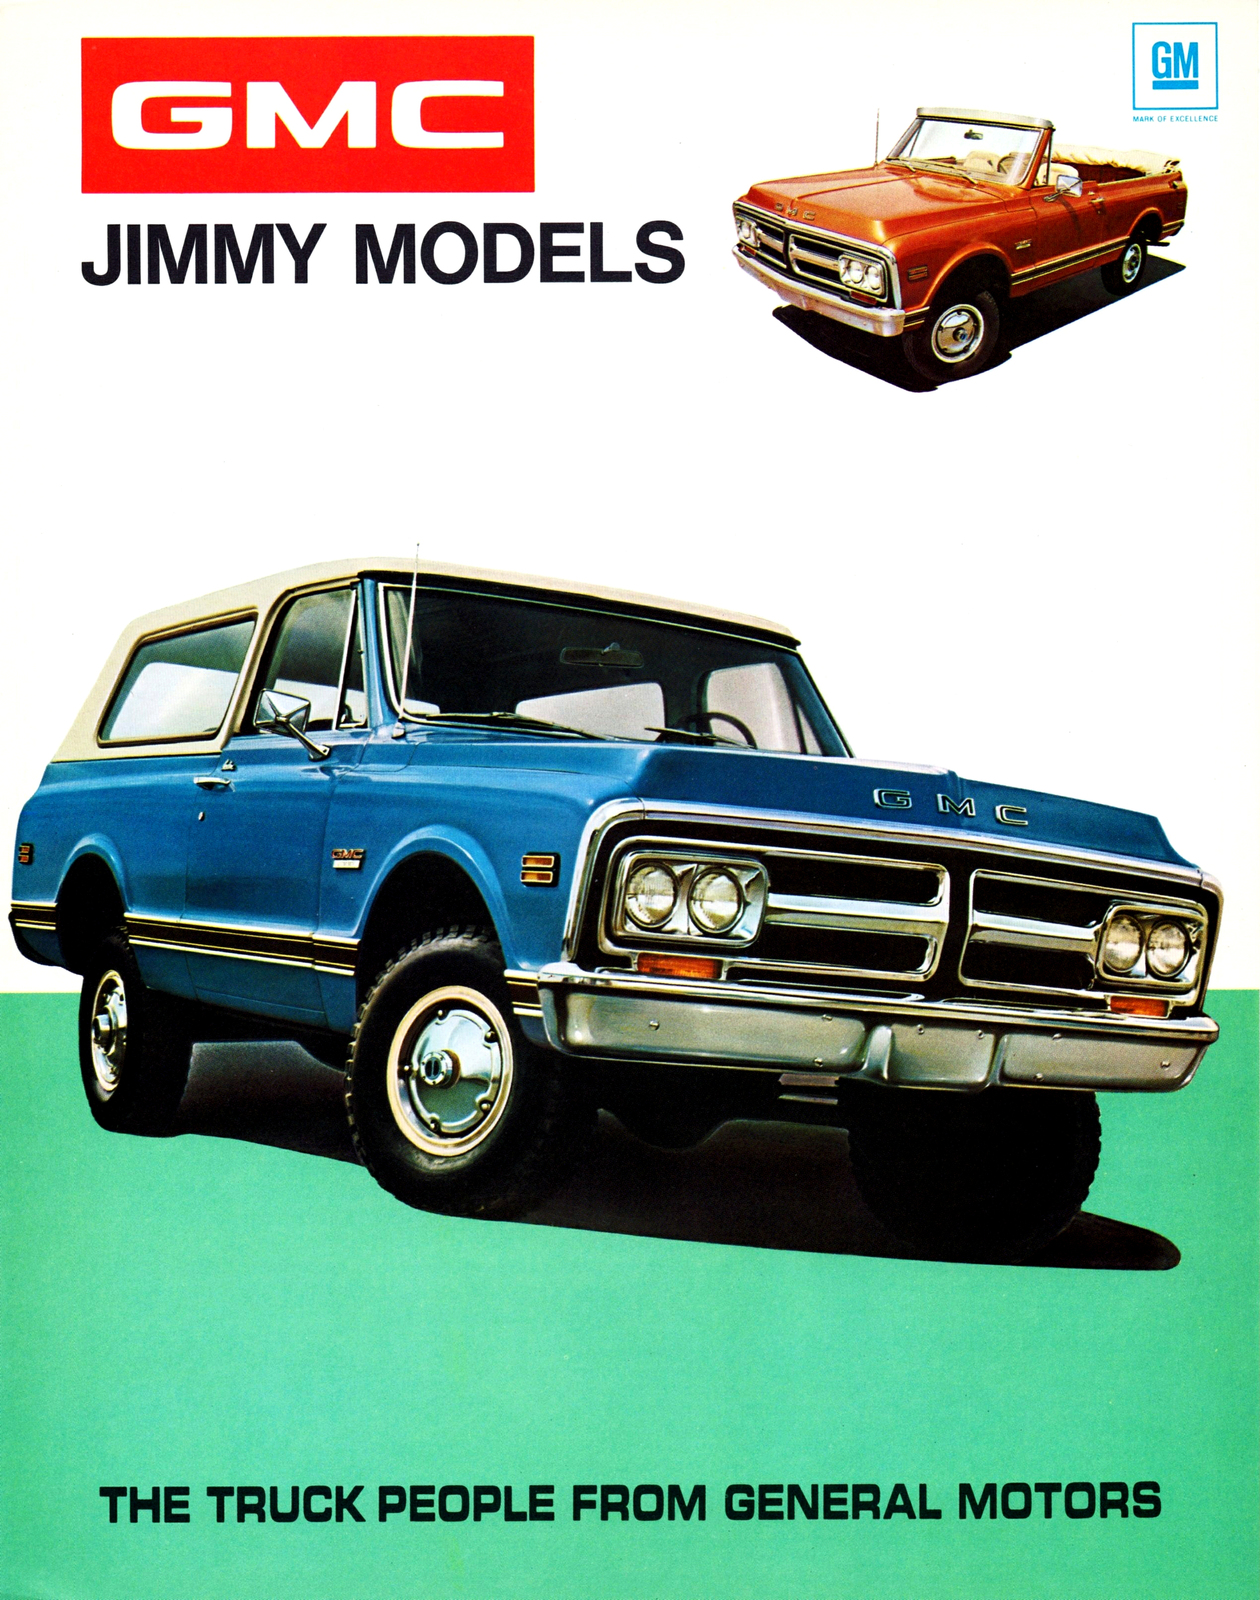 Primary image for 1971 GMC Jimmy | 24 X 36 inch poster